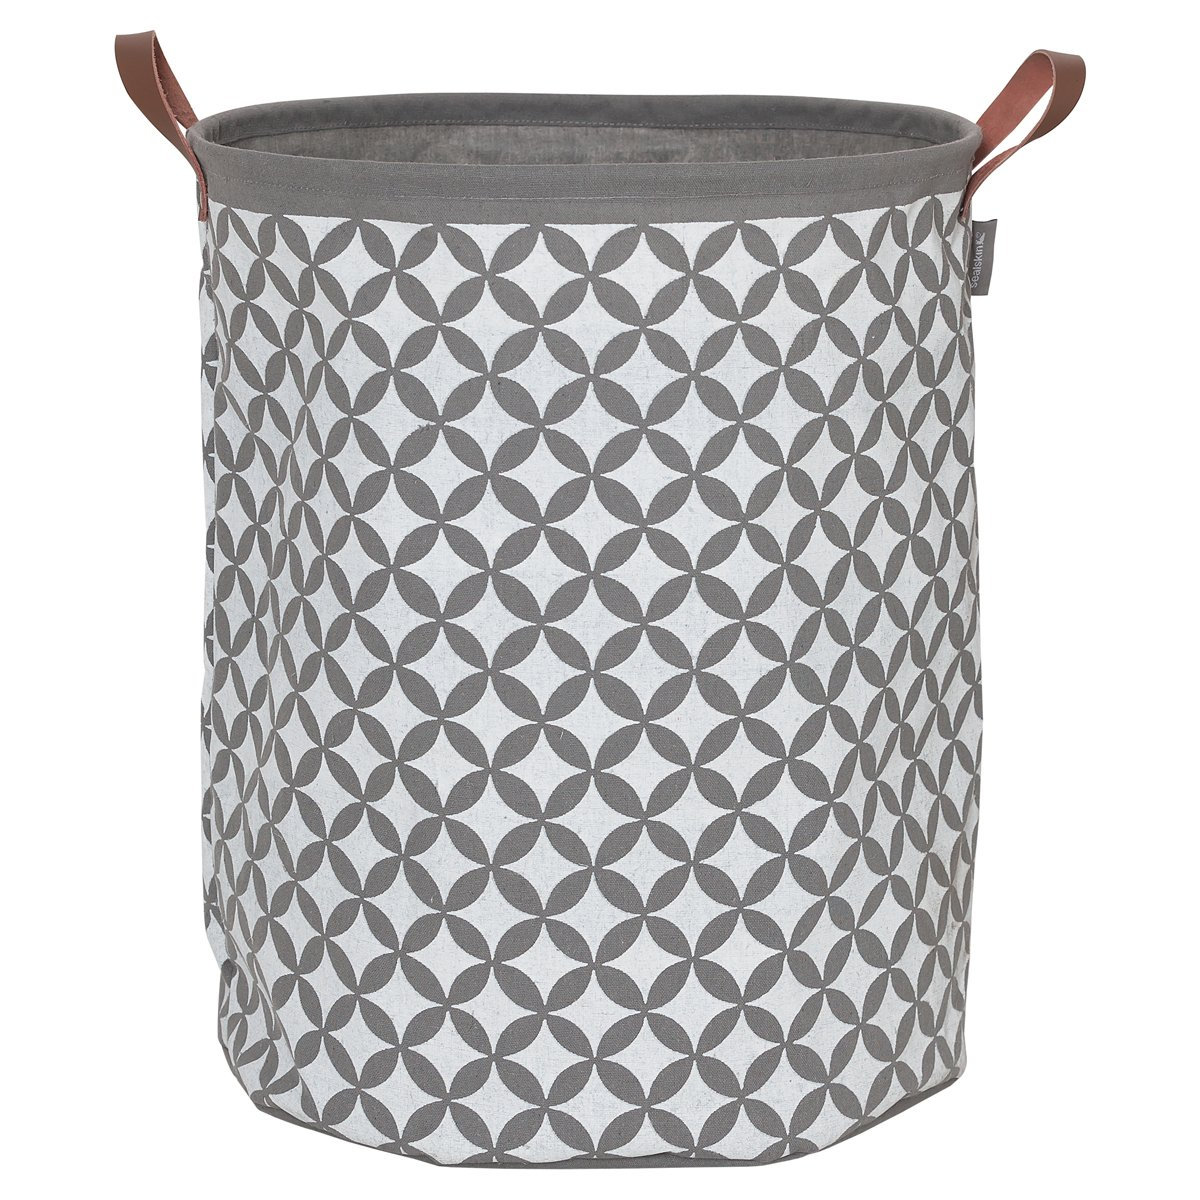 Sealskin 362302012Diamonds Laundry Basket made of Fabric with Leather-Look Handles, Colour: Grey, 50x 40x 40cm